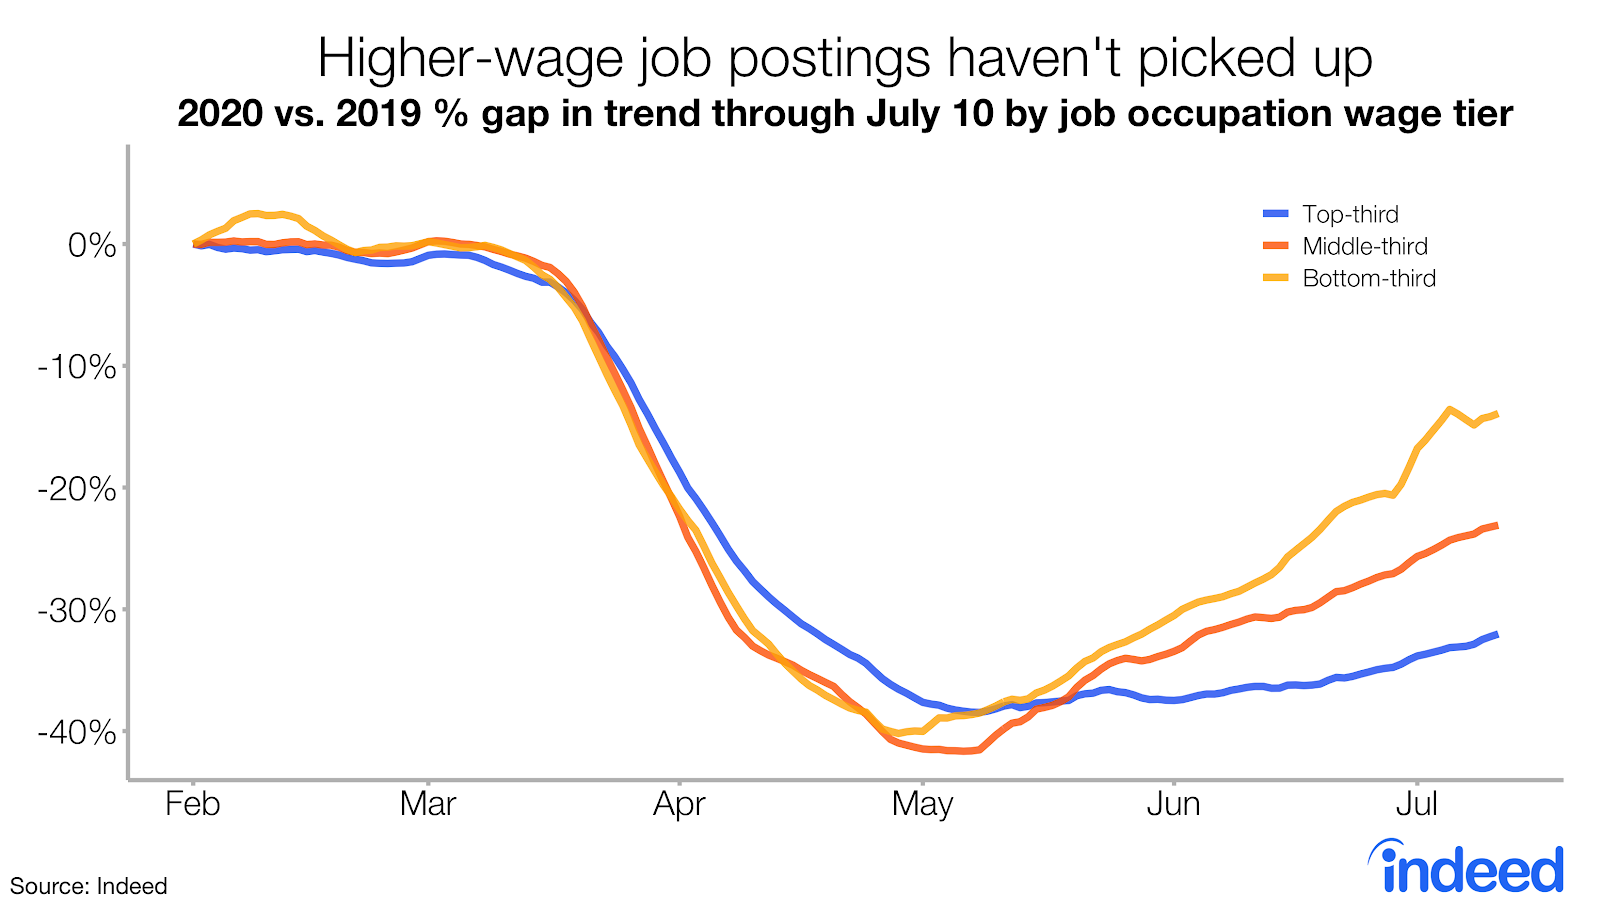 Higher-wage job postings haven't picked up